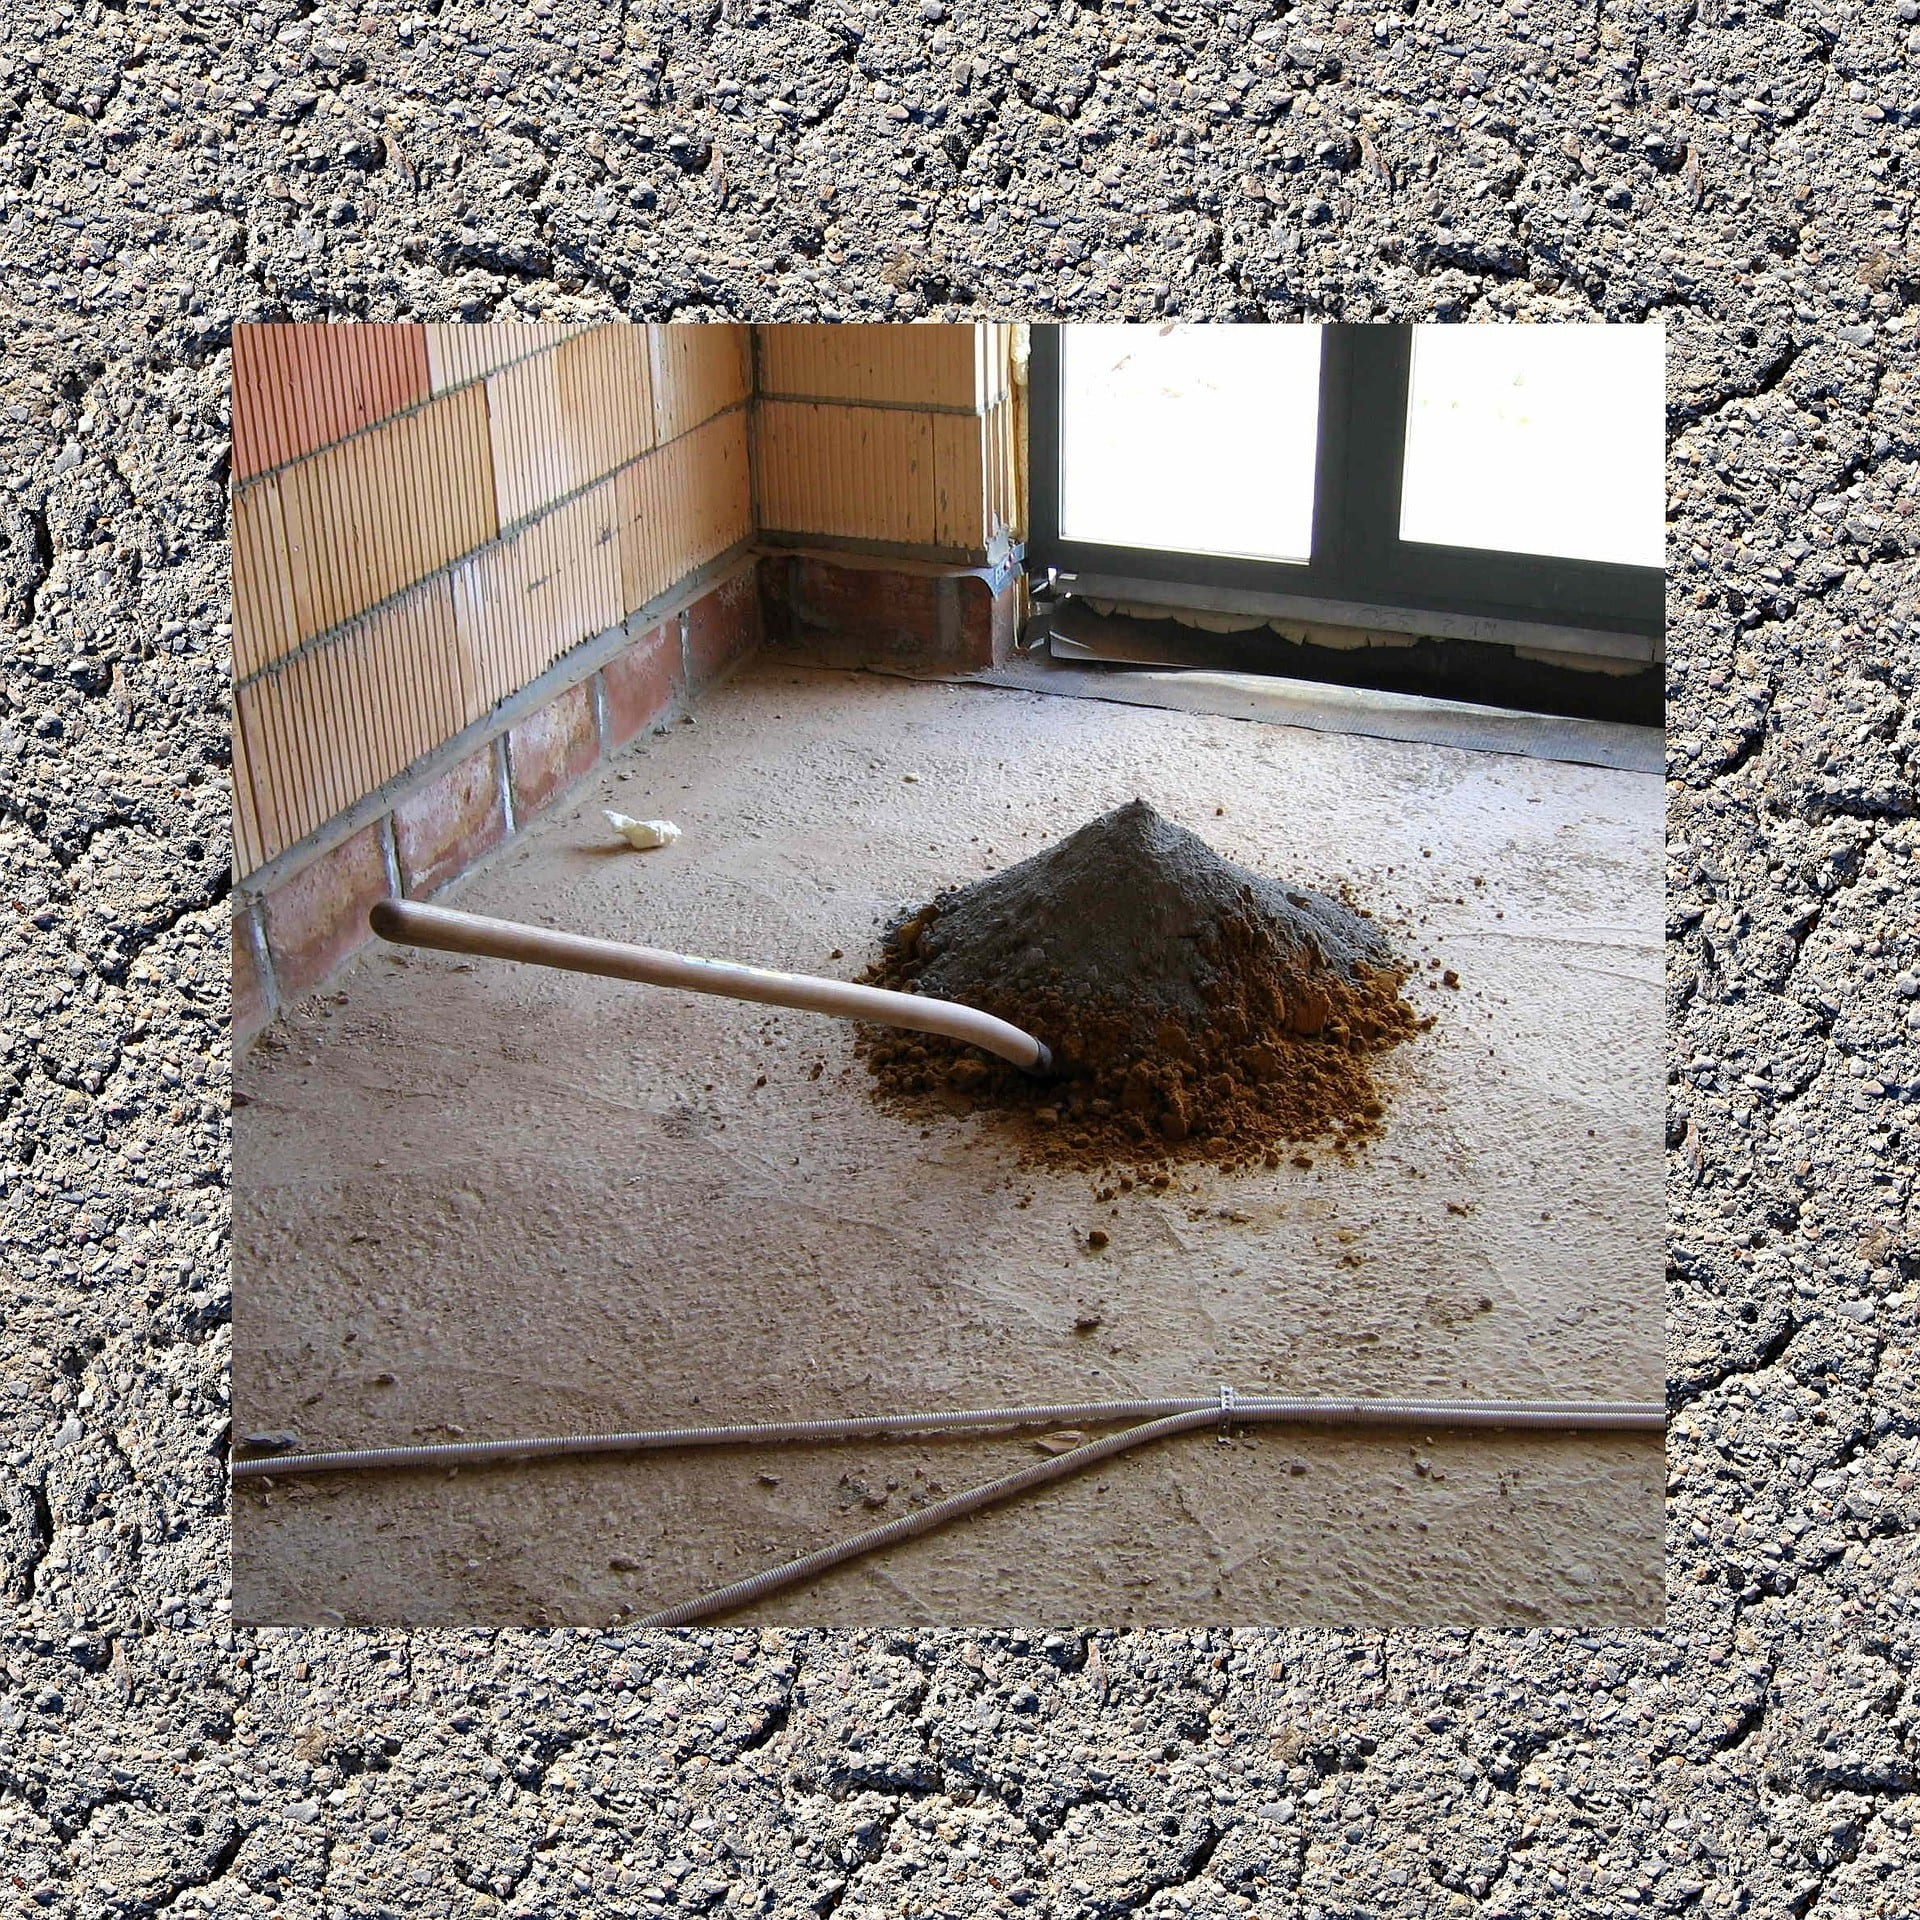 How To Level An Uneven Concrete Floor For Tile